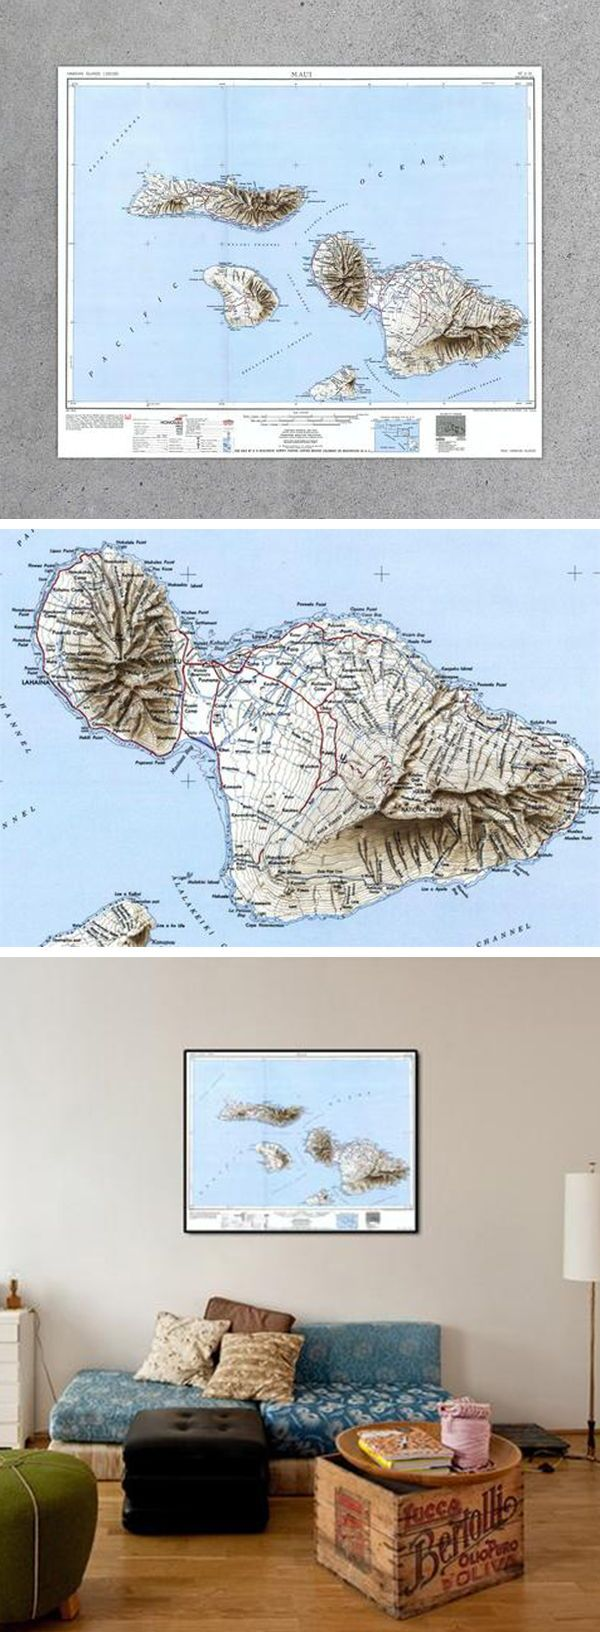 Topographic Map Of Maui.Maui Hi 1951 Usgs Map Globes Maps Vintage Maps Map Inspired